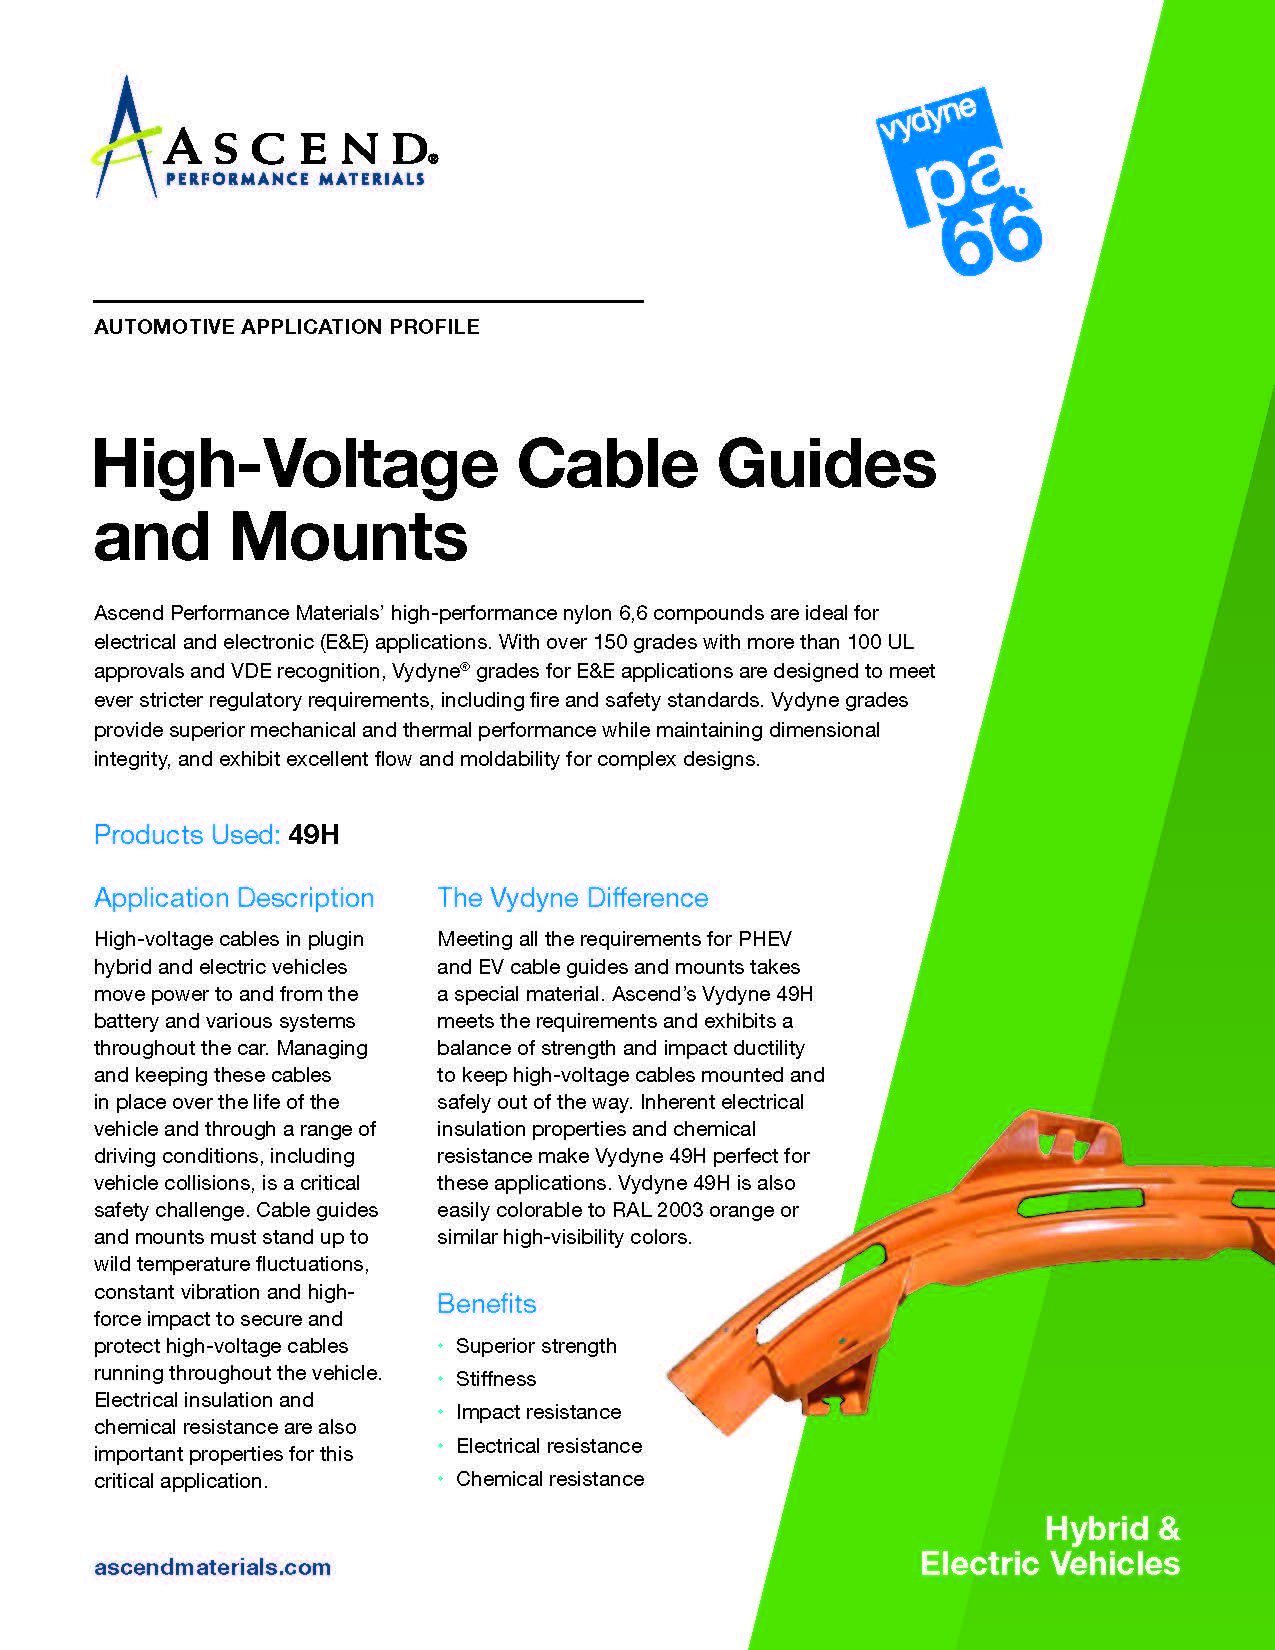 Auto EV application: high voltage cable guide